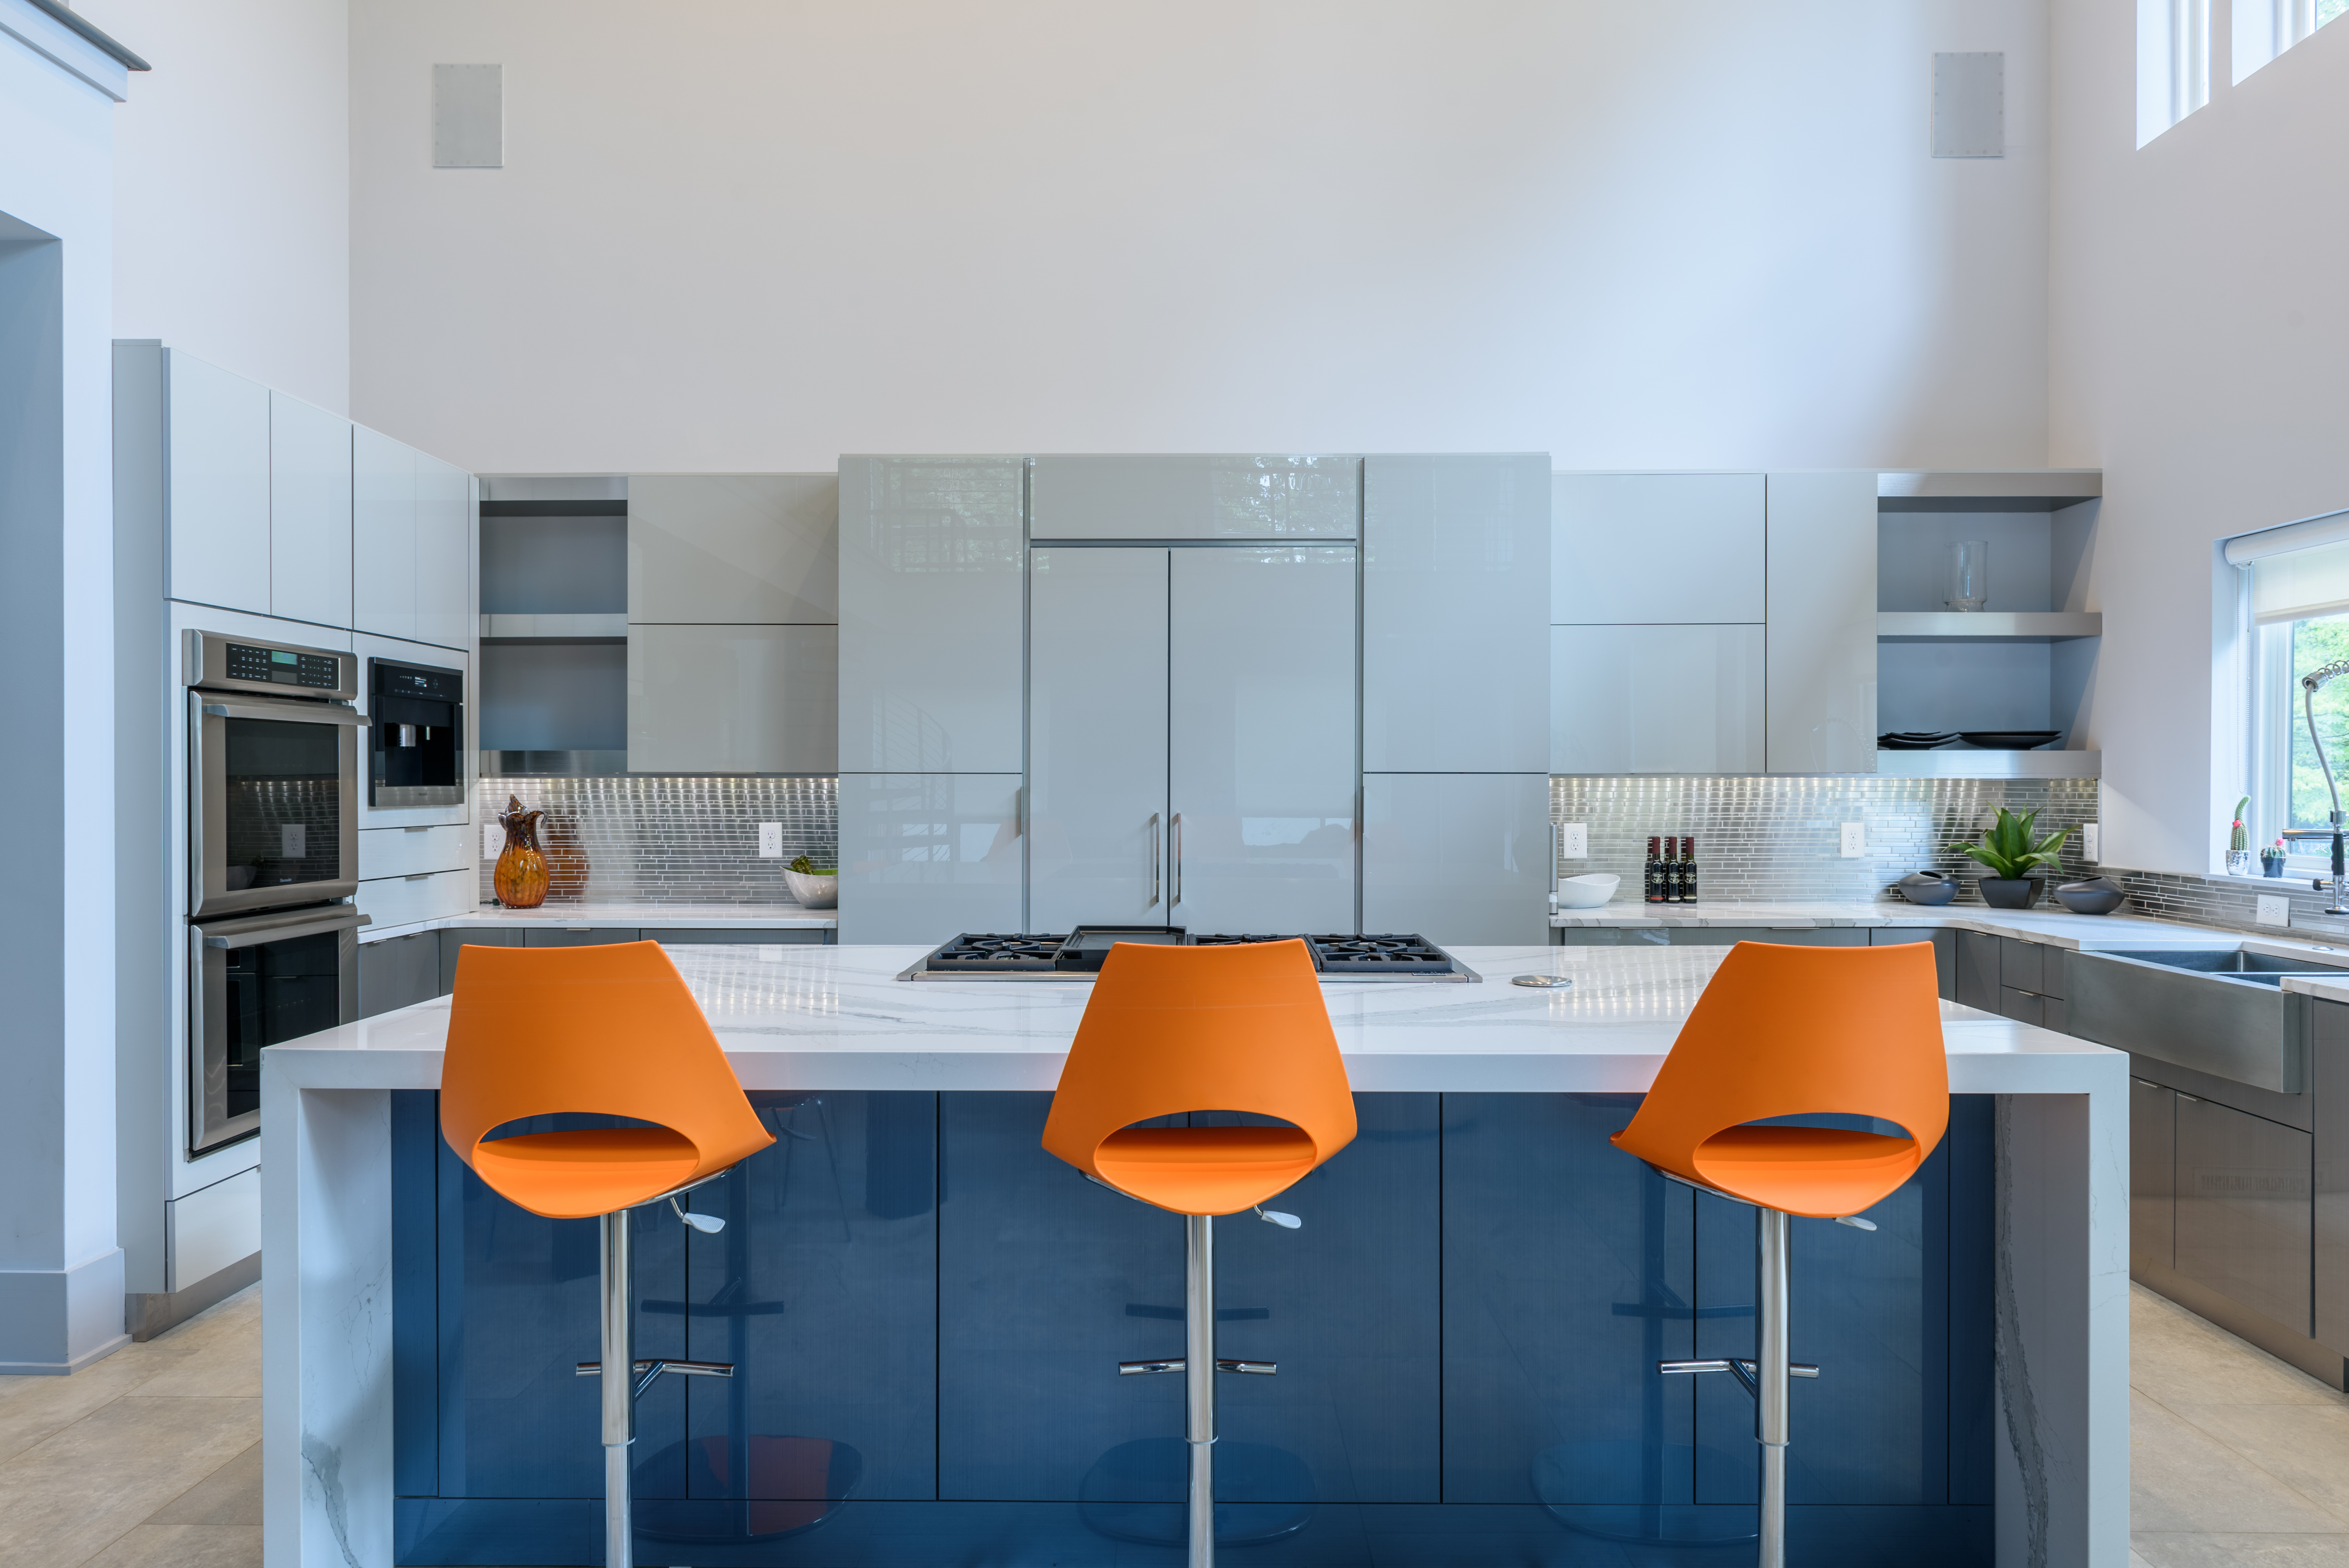 KitchenCraft Contemporary 4246 Brookview Drive-02/19 - Founders ...